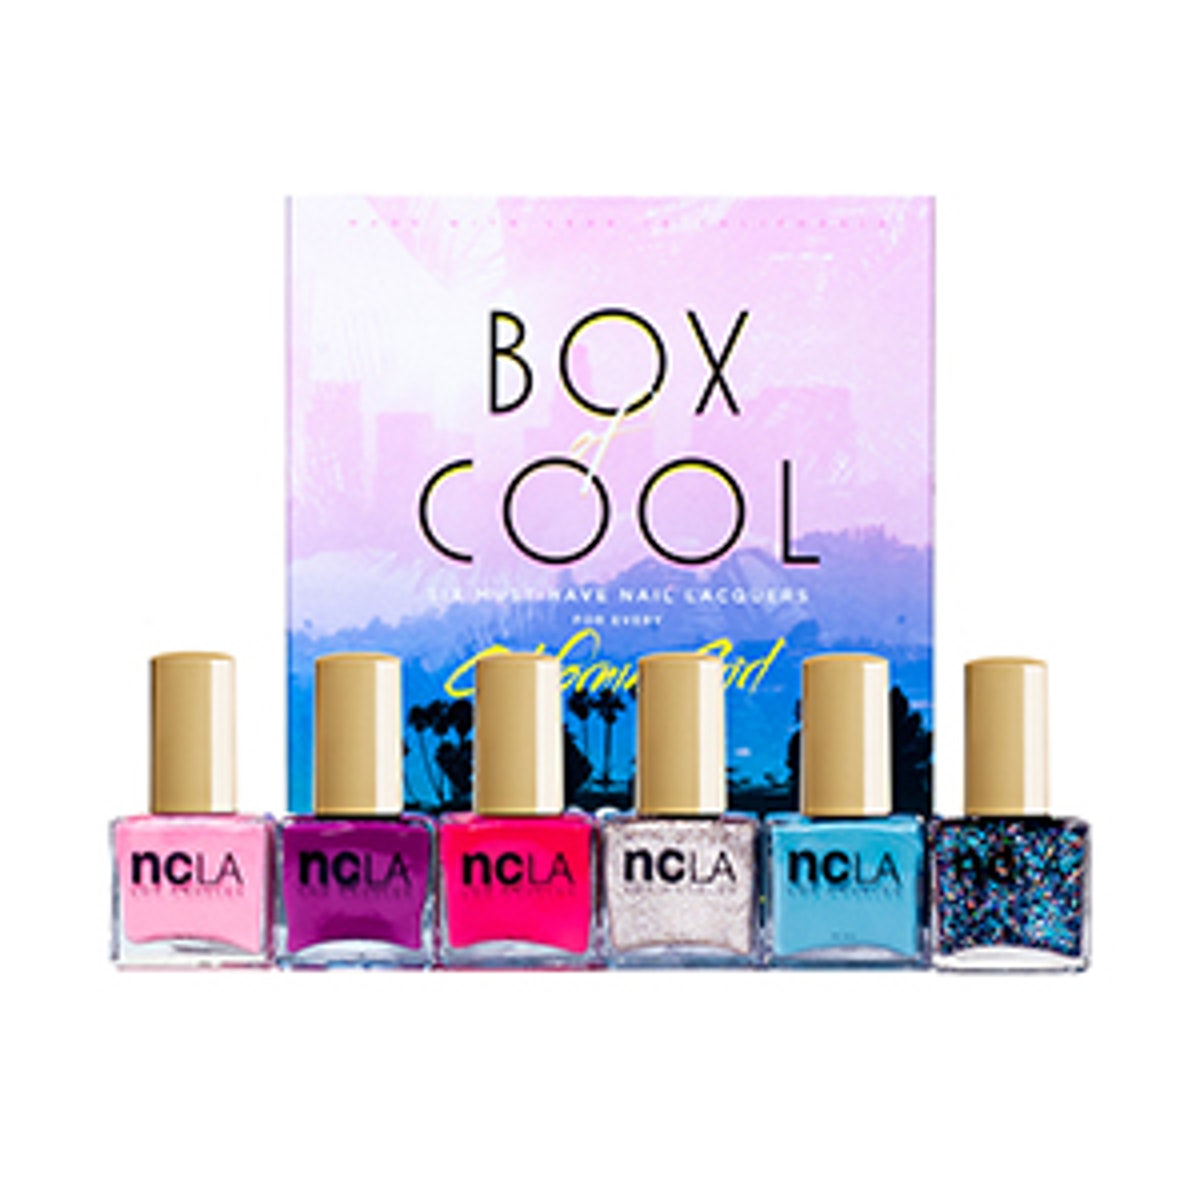 Box of Cool Nail Lacquers